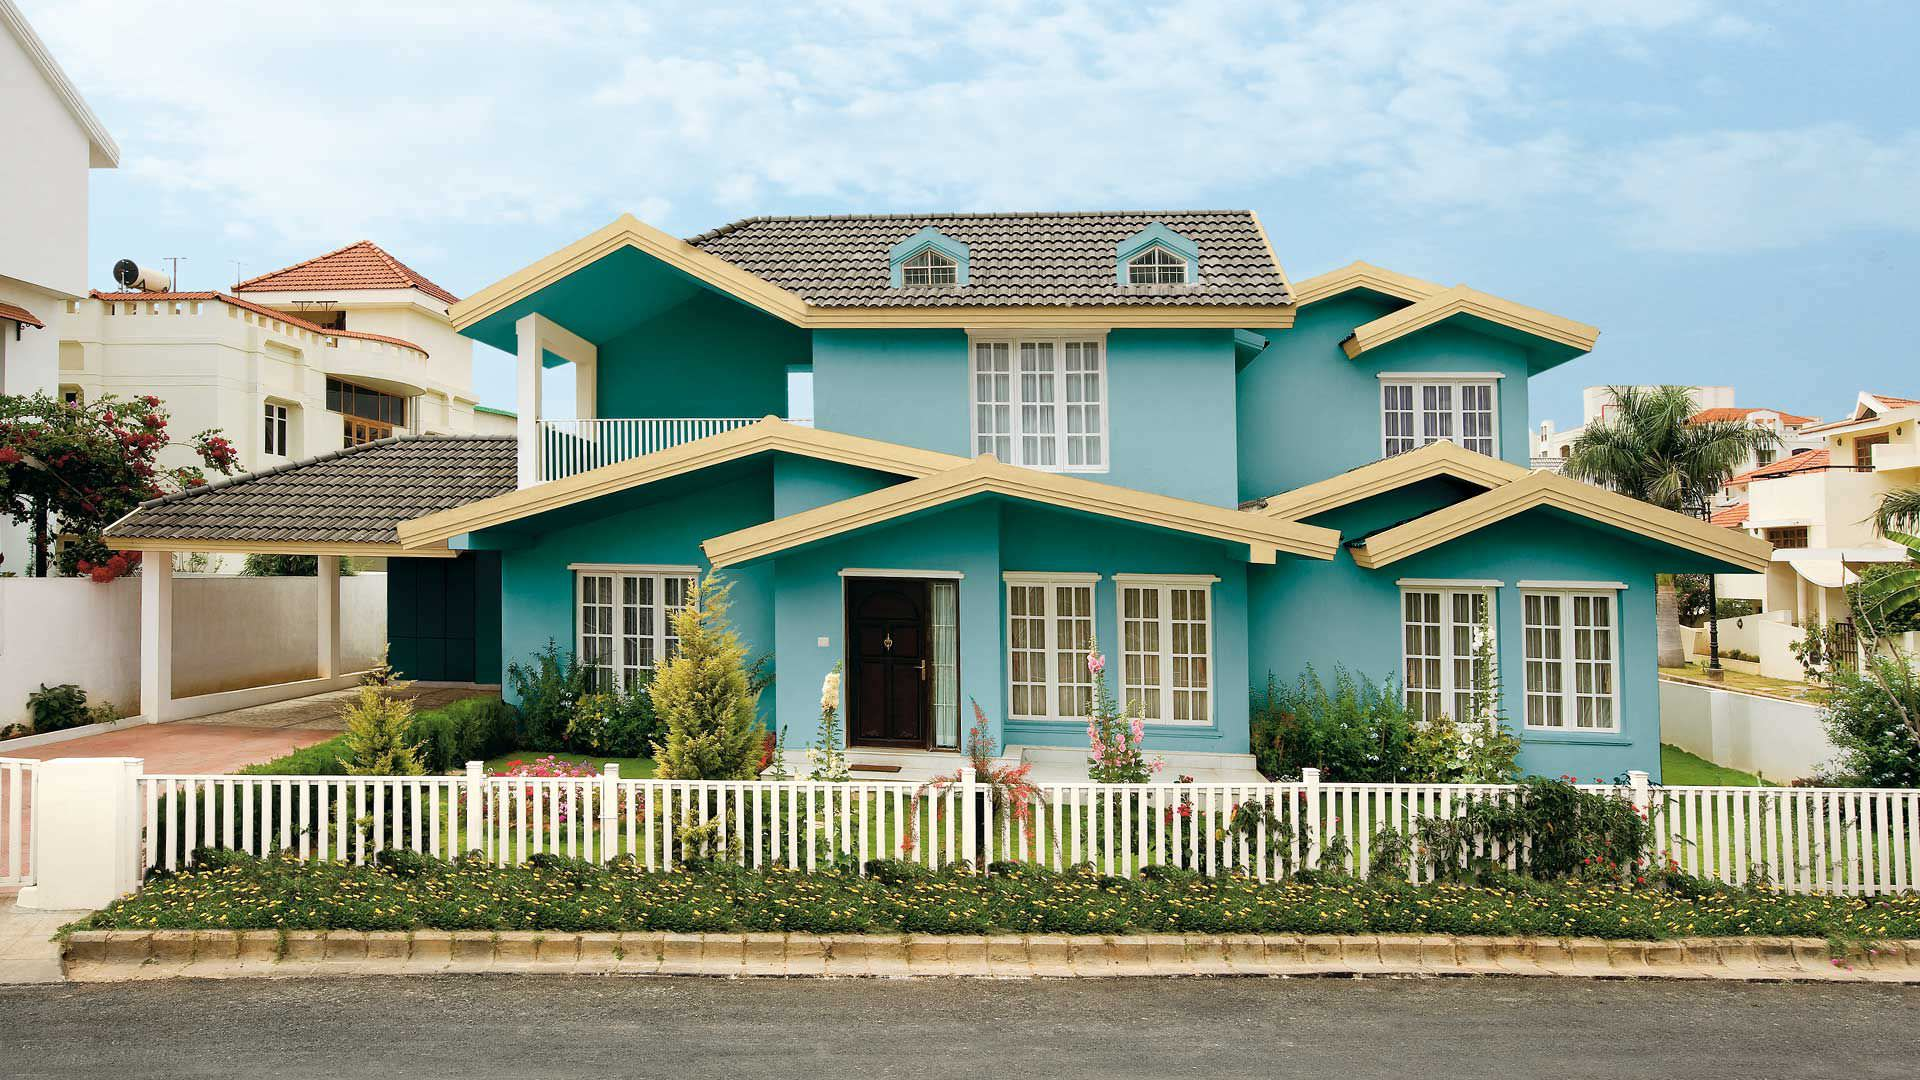 40 Best Exterior Paint Color Ideas For Your House